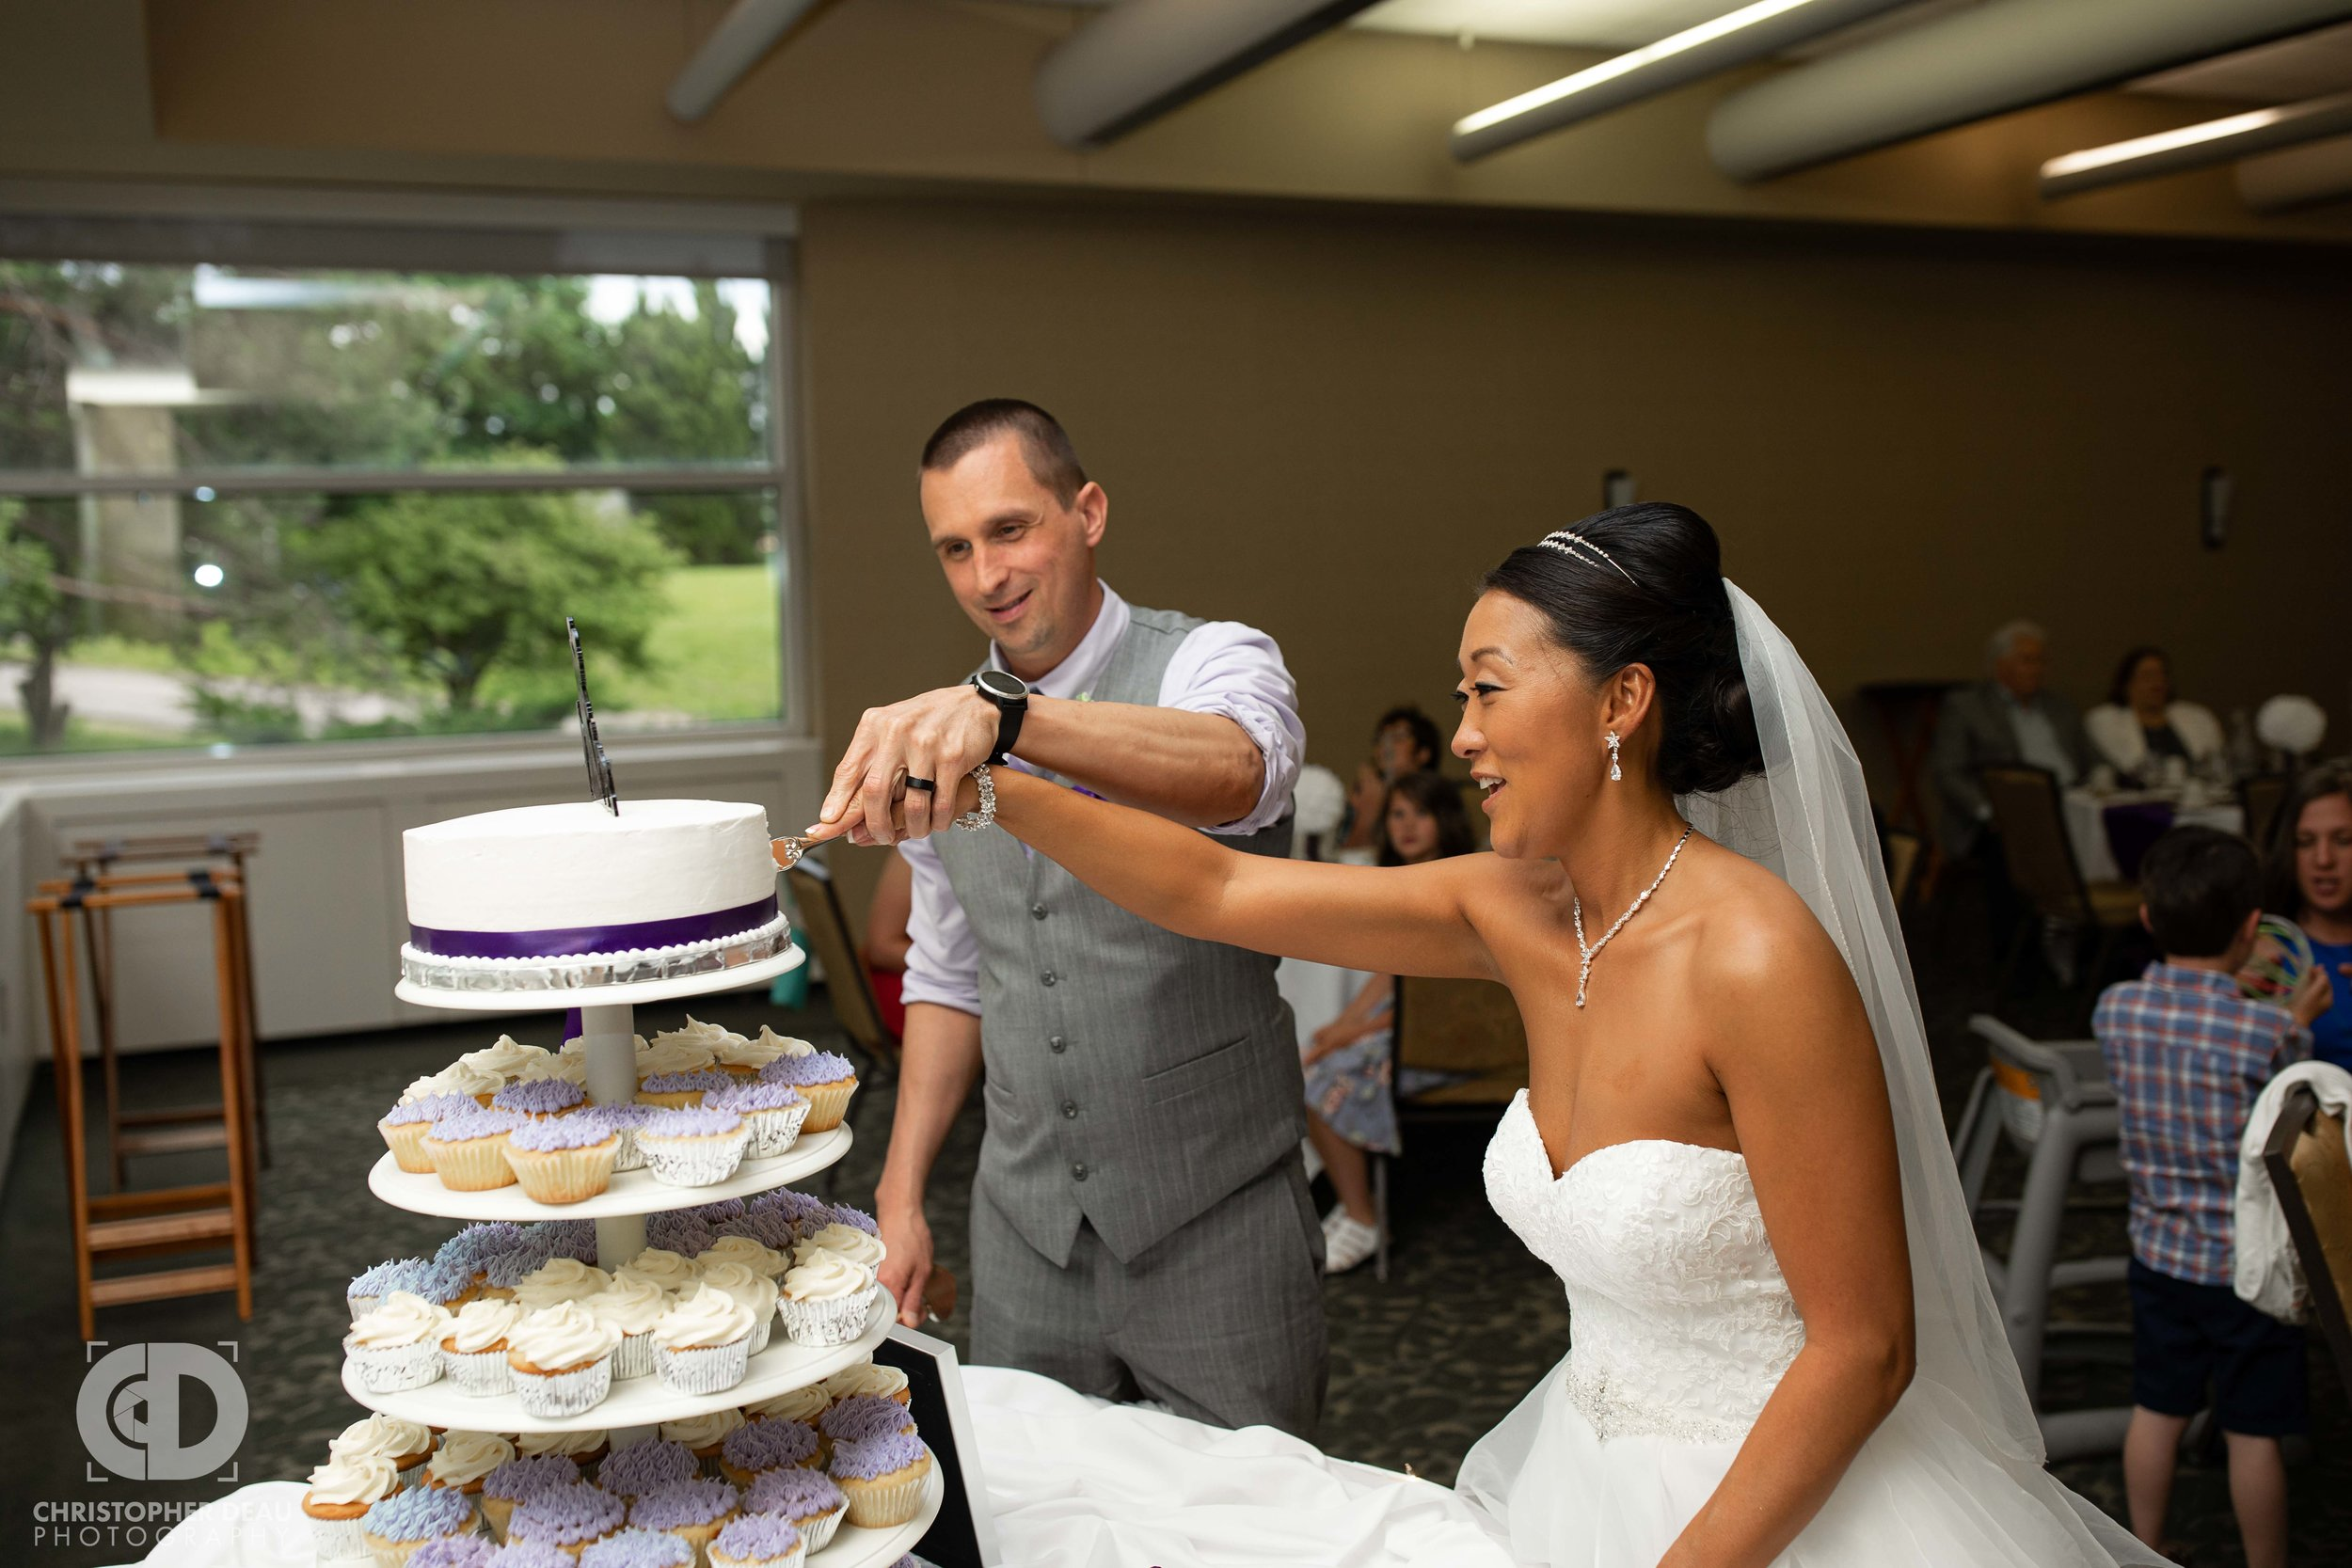 Wedding cake cutting at WMU Fetzer Center